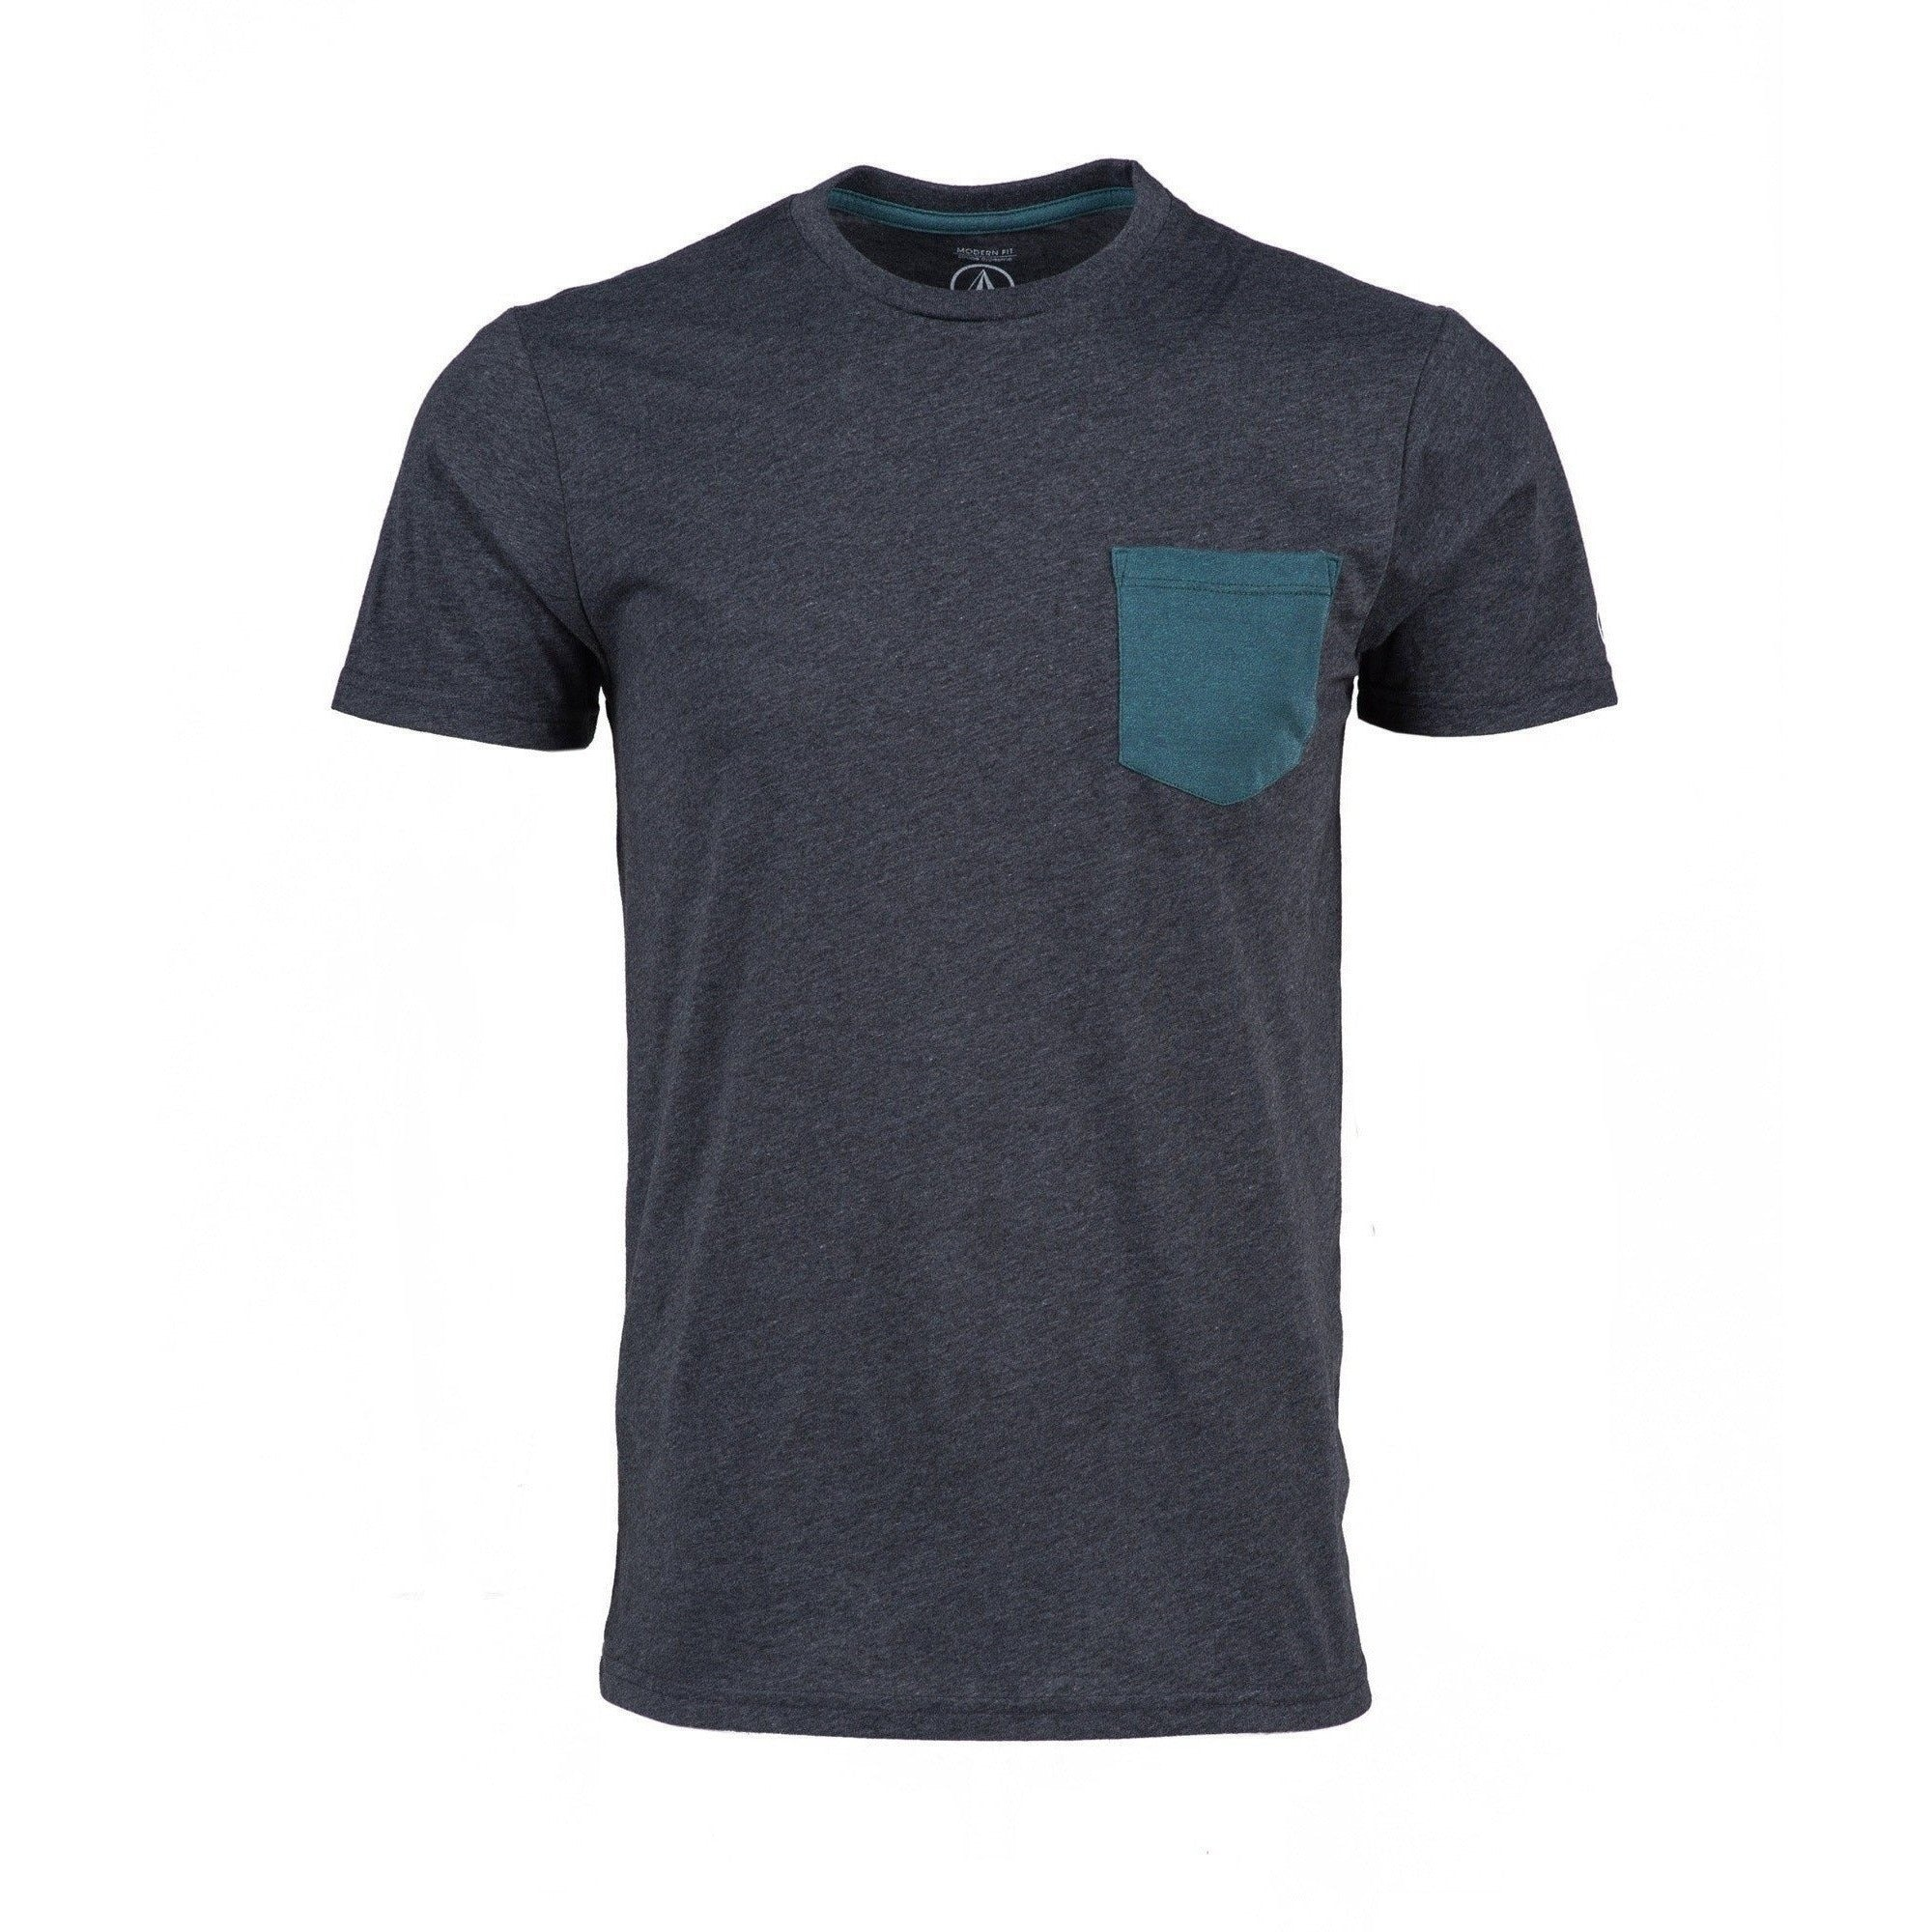 Volcom Mixed Pocket Tee - 88 Gear